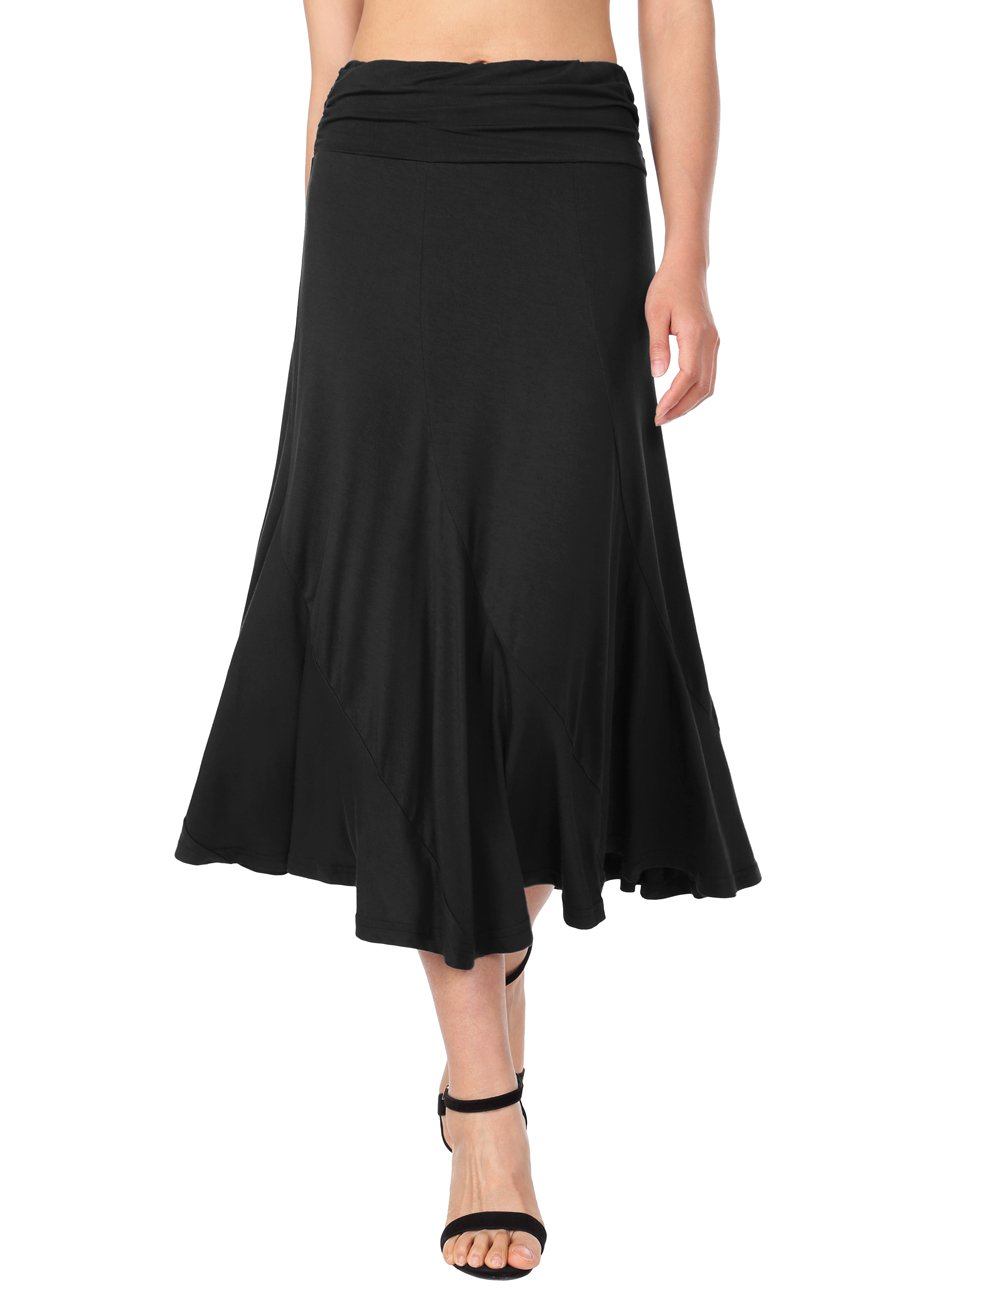 Summer Skirts for Women Casual,DJT Women's Vintage High Waist Shirring A-Line Long Midi Skirt Small Black